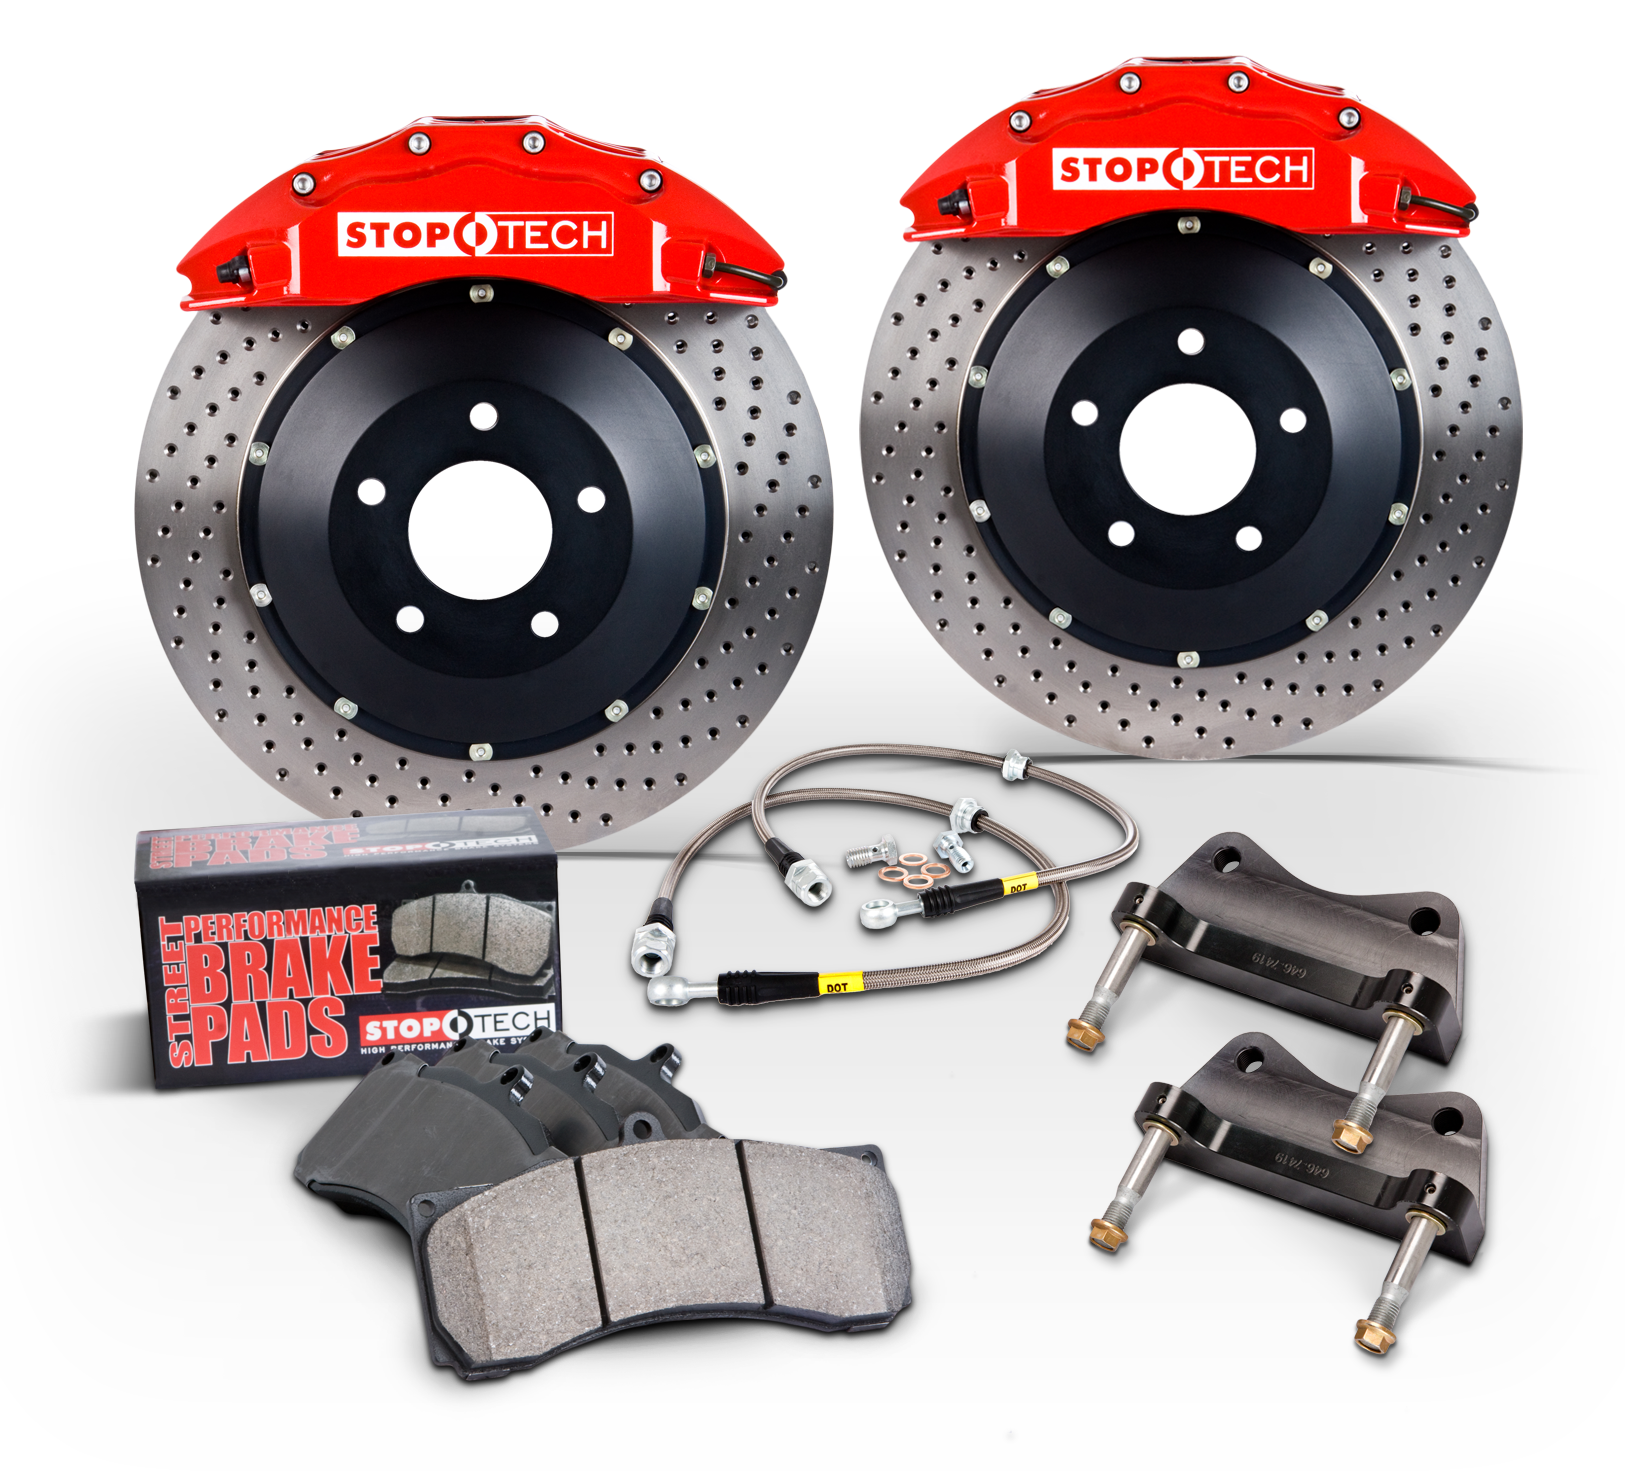 StopTech Big Brake Kits Available for Audi and VW Models